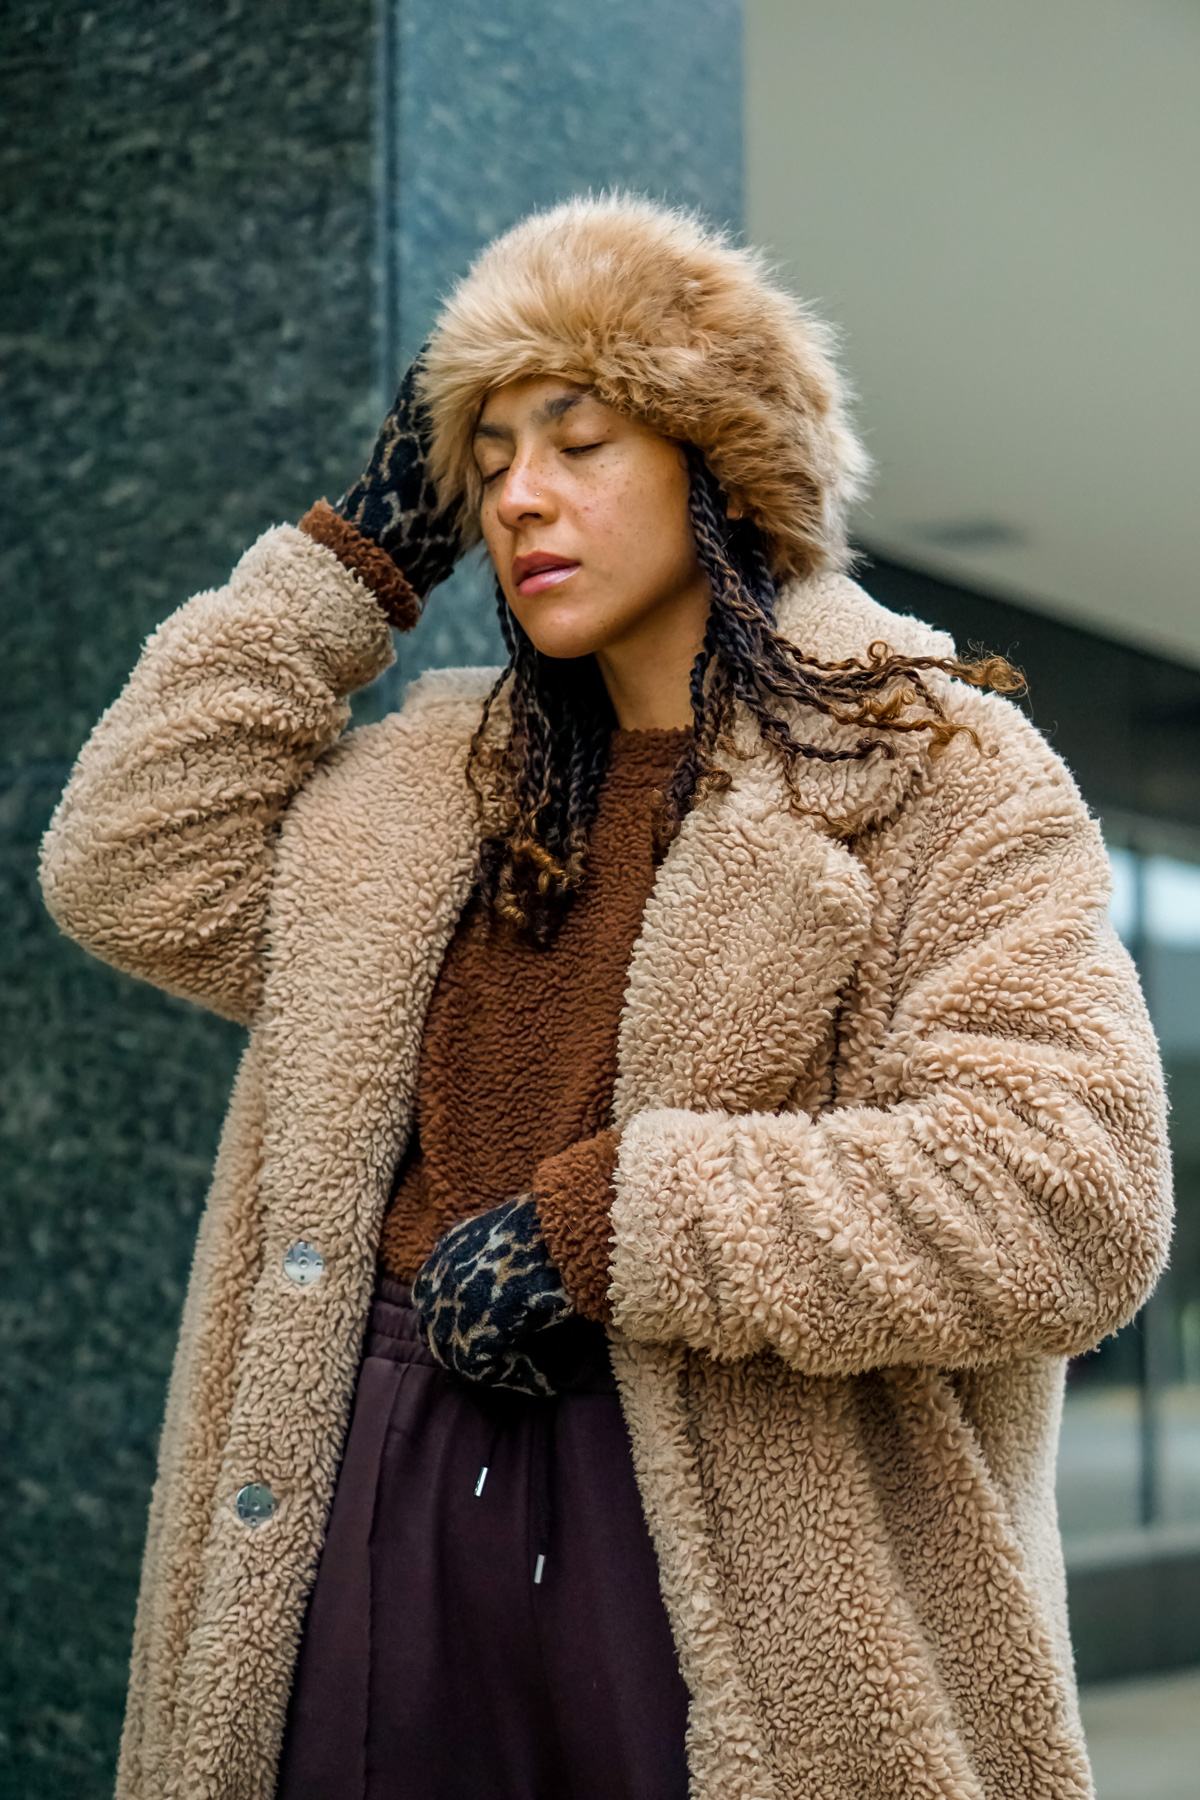 stylish winter accessories for women, chic winter outfit idea black girl, winter accessories hats, black girl fashion blogger, winter accessories gloves